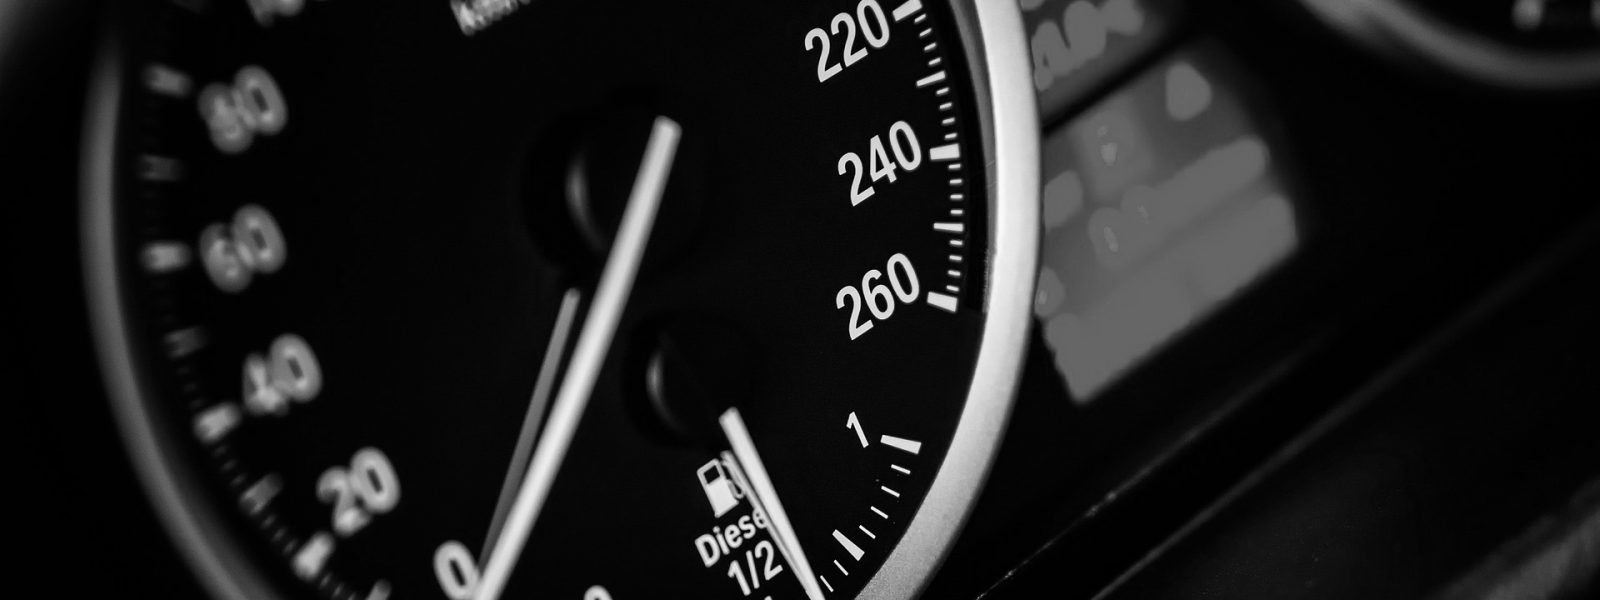 Image speedometer website loading speed